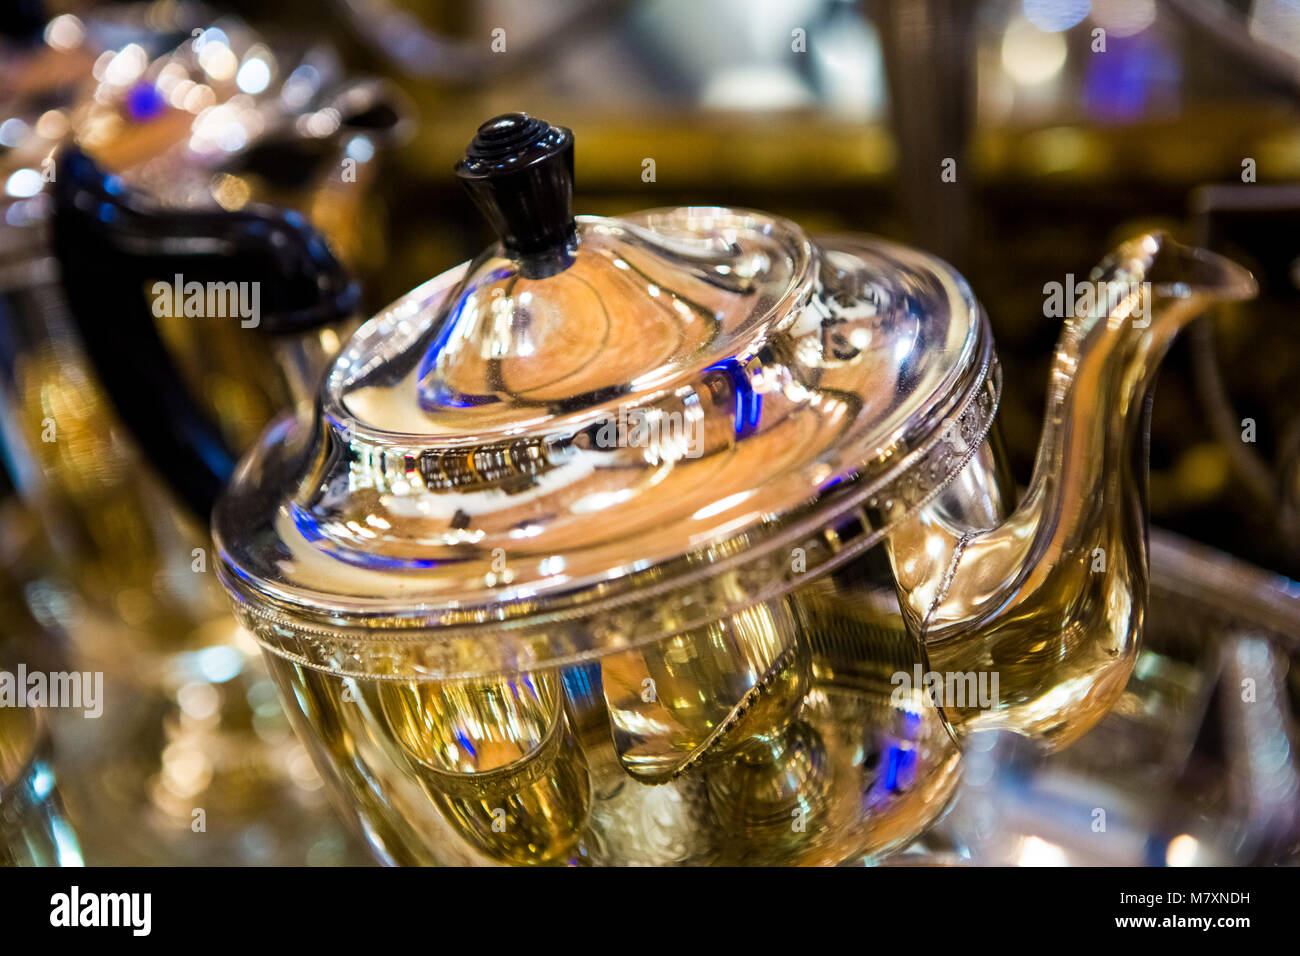 Vintage silver teapot in antiques store. - Stock Image